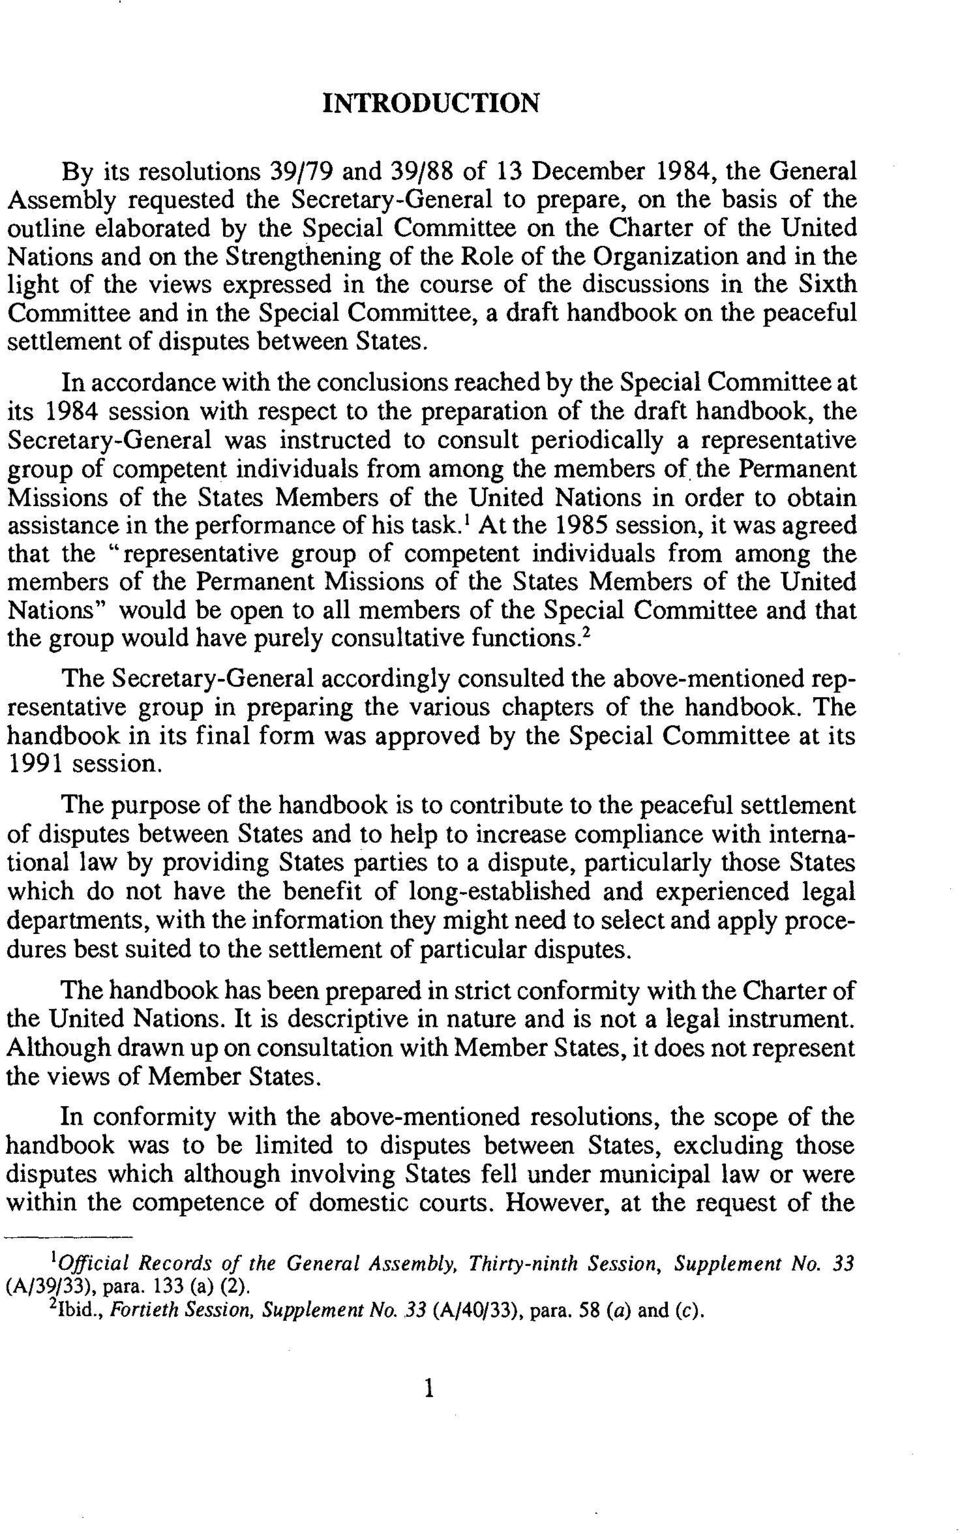 the Special Committee, a draft handbook on the peaceful settlement of disputes between States.